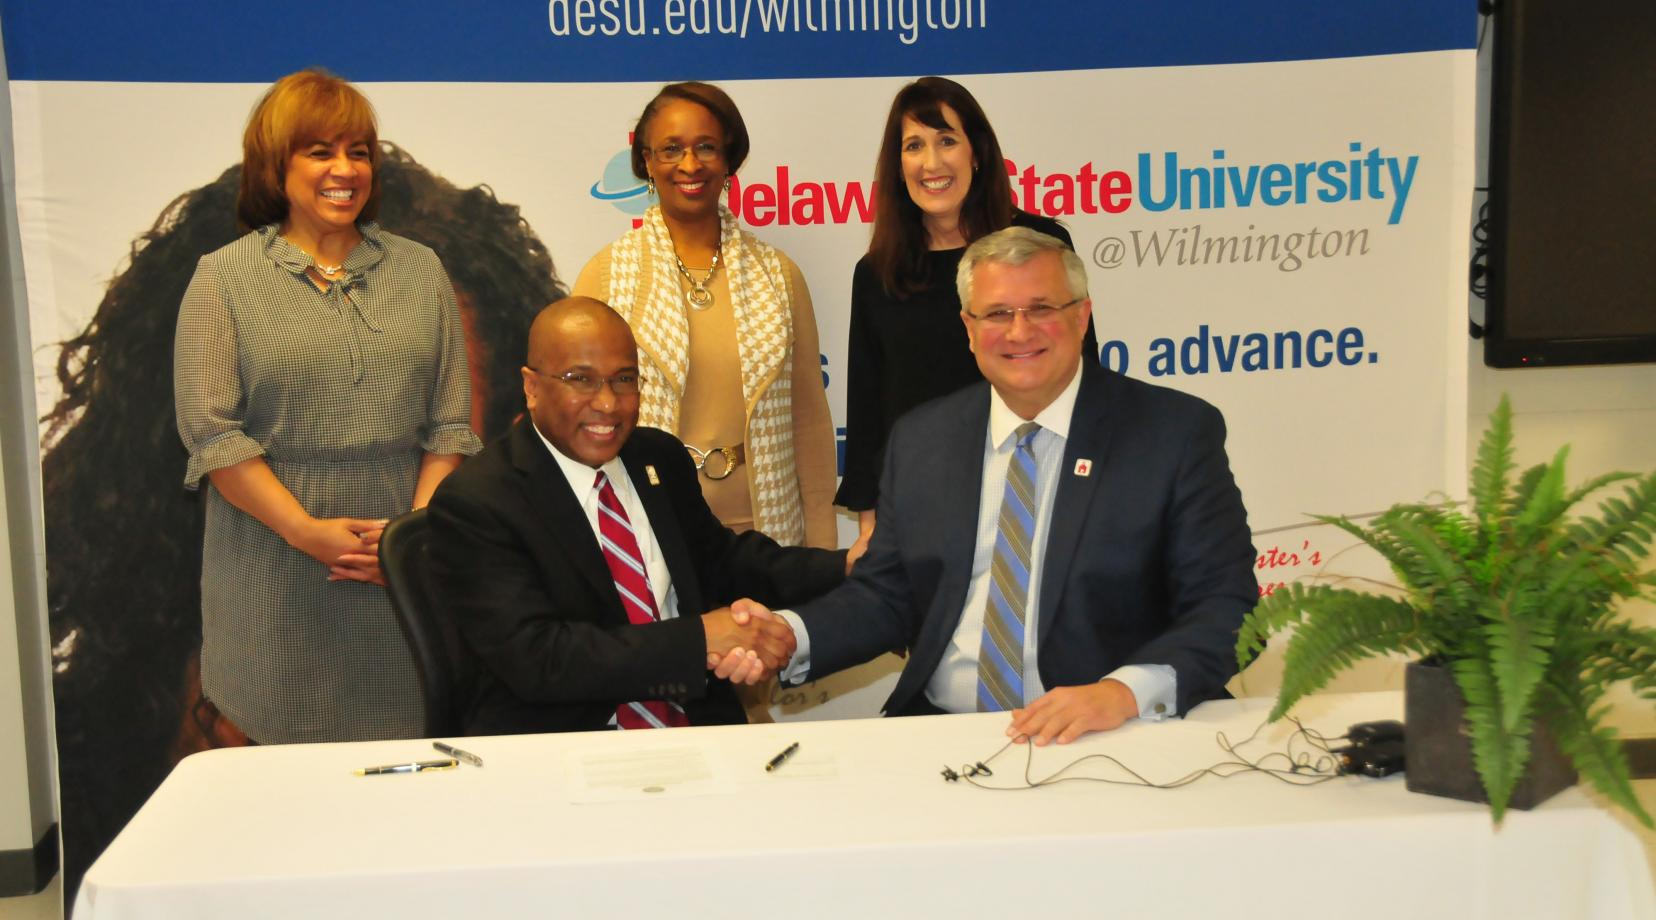 DSU President Harry L. Williams shakes hands with Red Clay School District Superintendent Merv Daugherty after signing an agreement to offer IT courses to high school students at DSU@Wilmington.